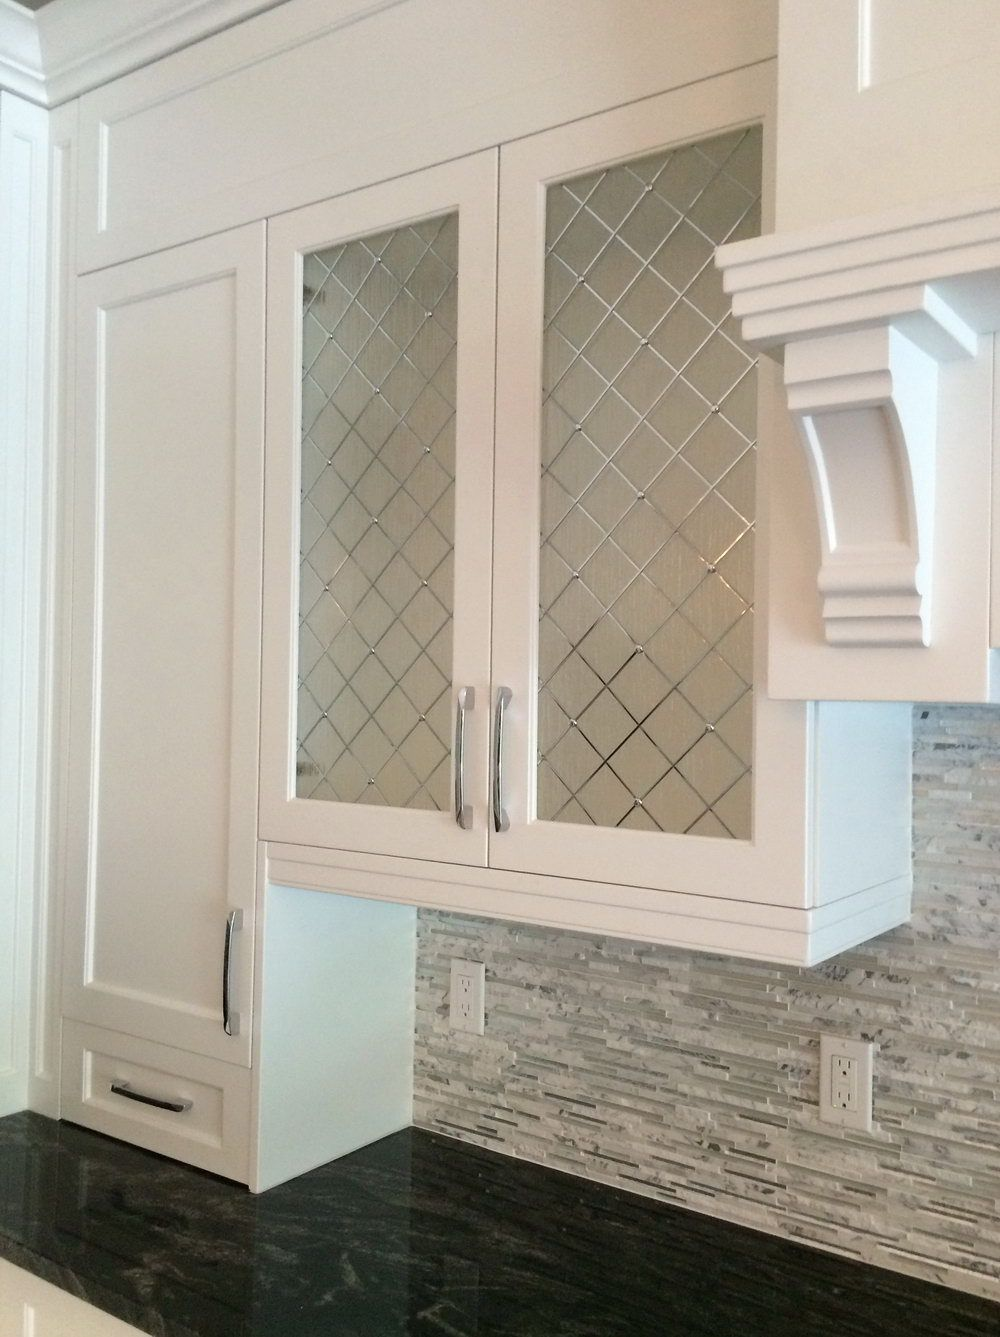 Captivating Frosted Glass Kitchen Cabinet Doors Kitchencabinetsorganization With Images Glass Fronted Kitchen Cabinets